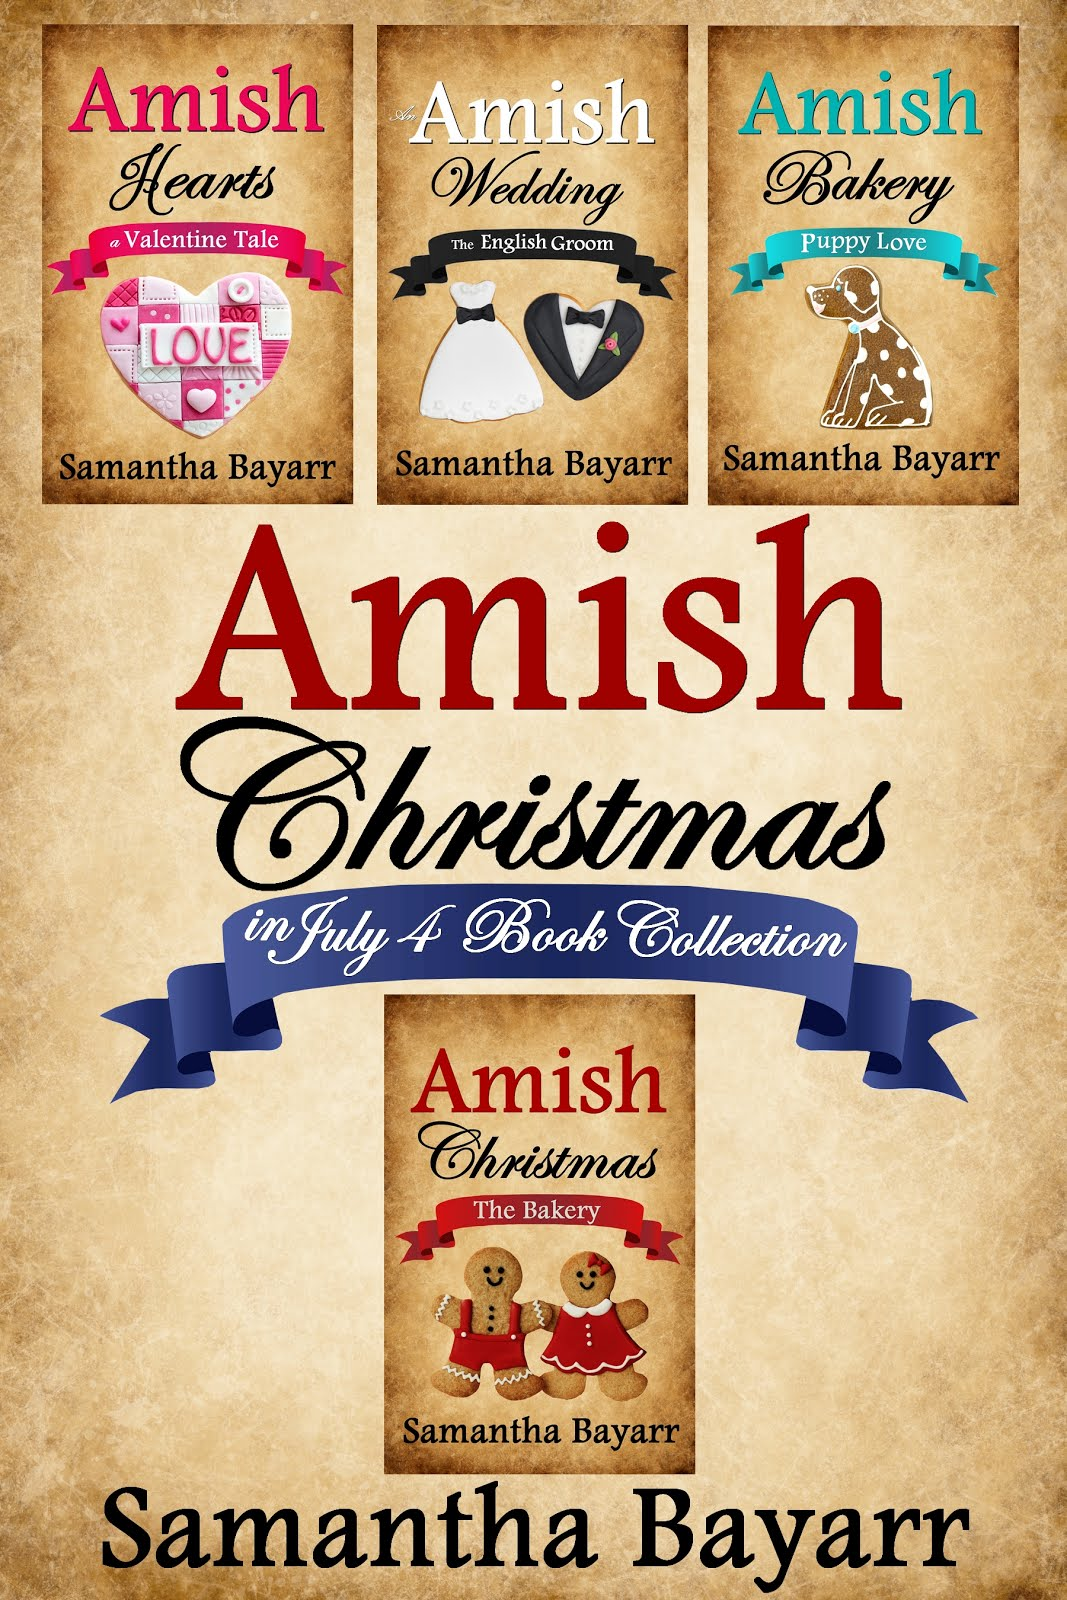 Amish Christmas in July Collection